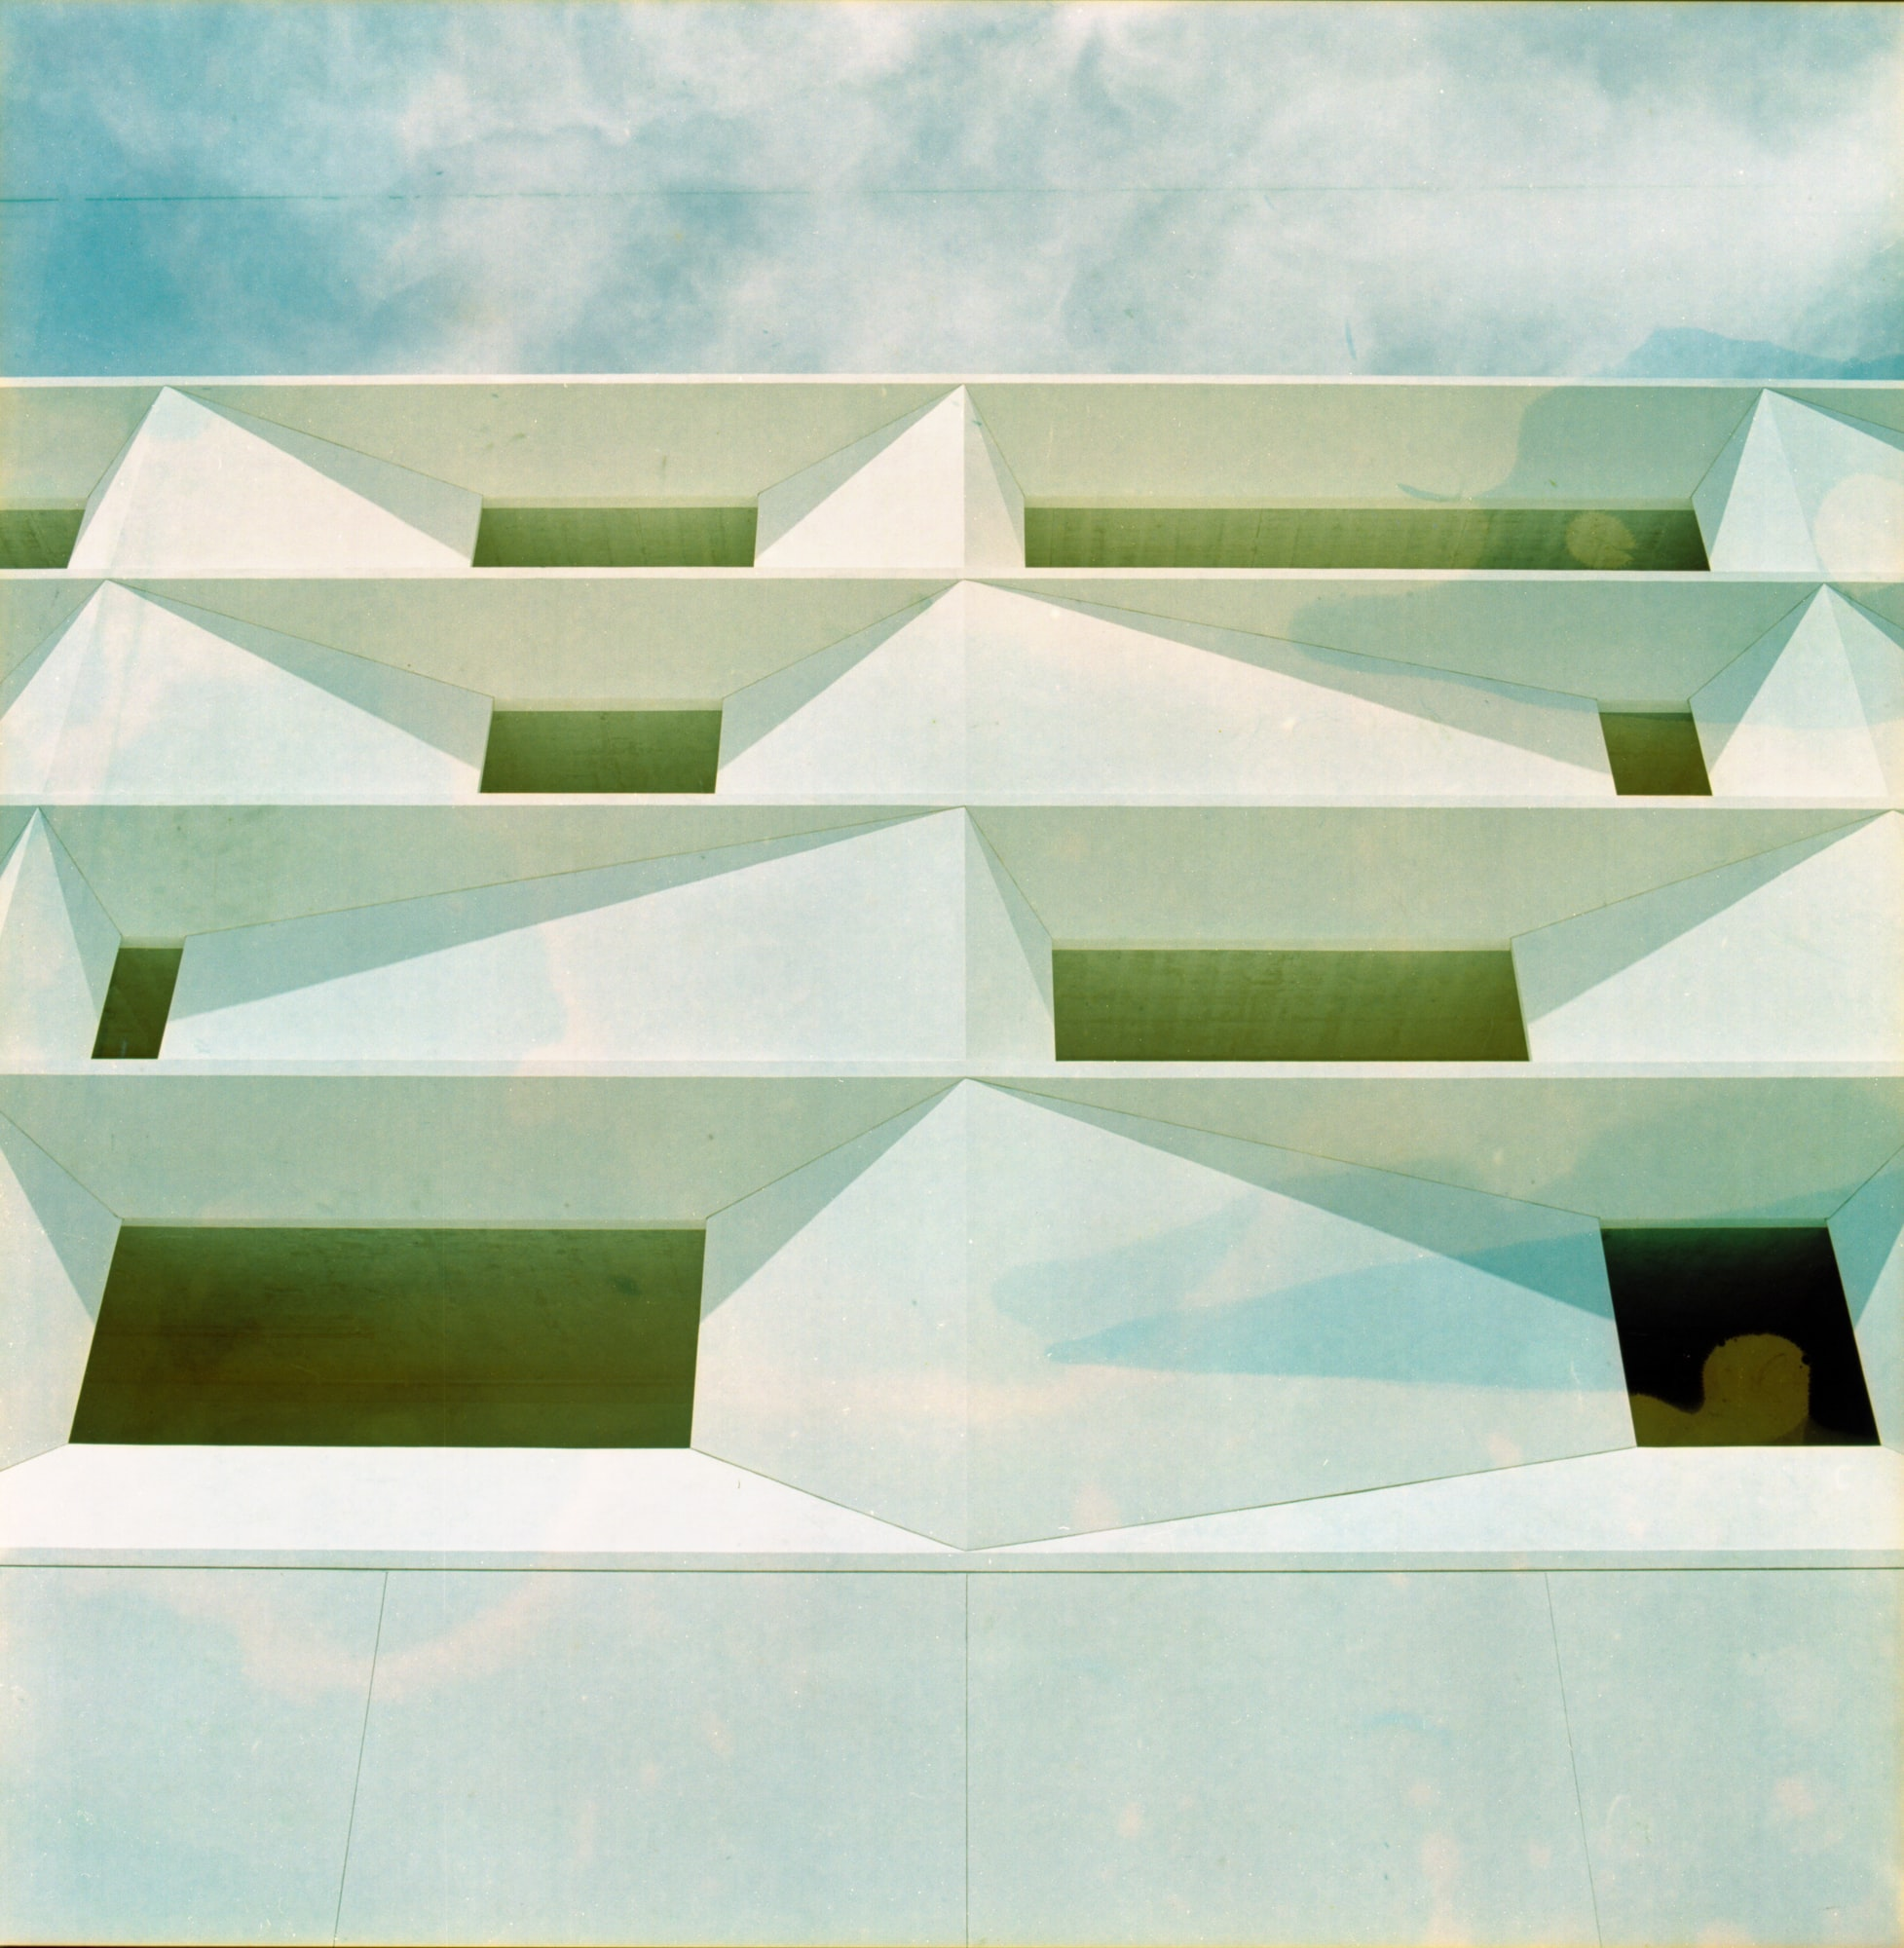 worm's eye view of white and green building